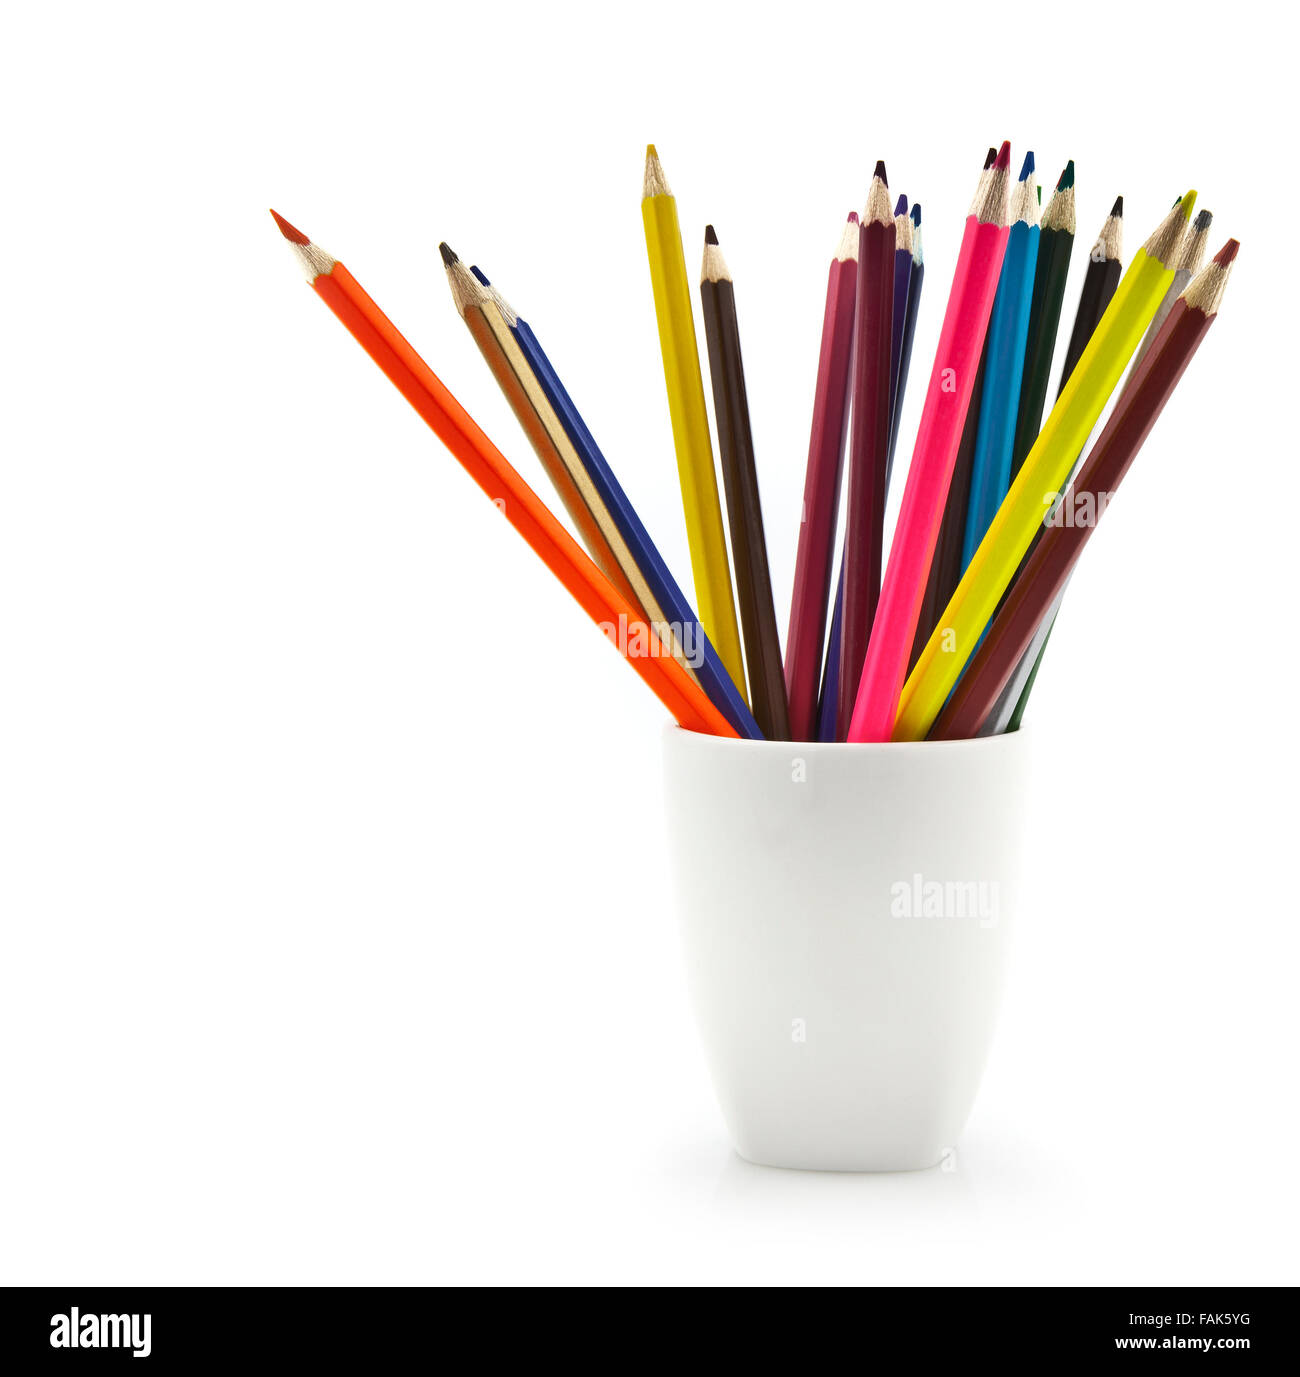 Colourful Pencils in a white Mug - Stock Image